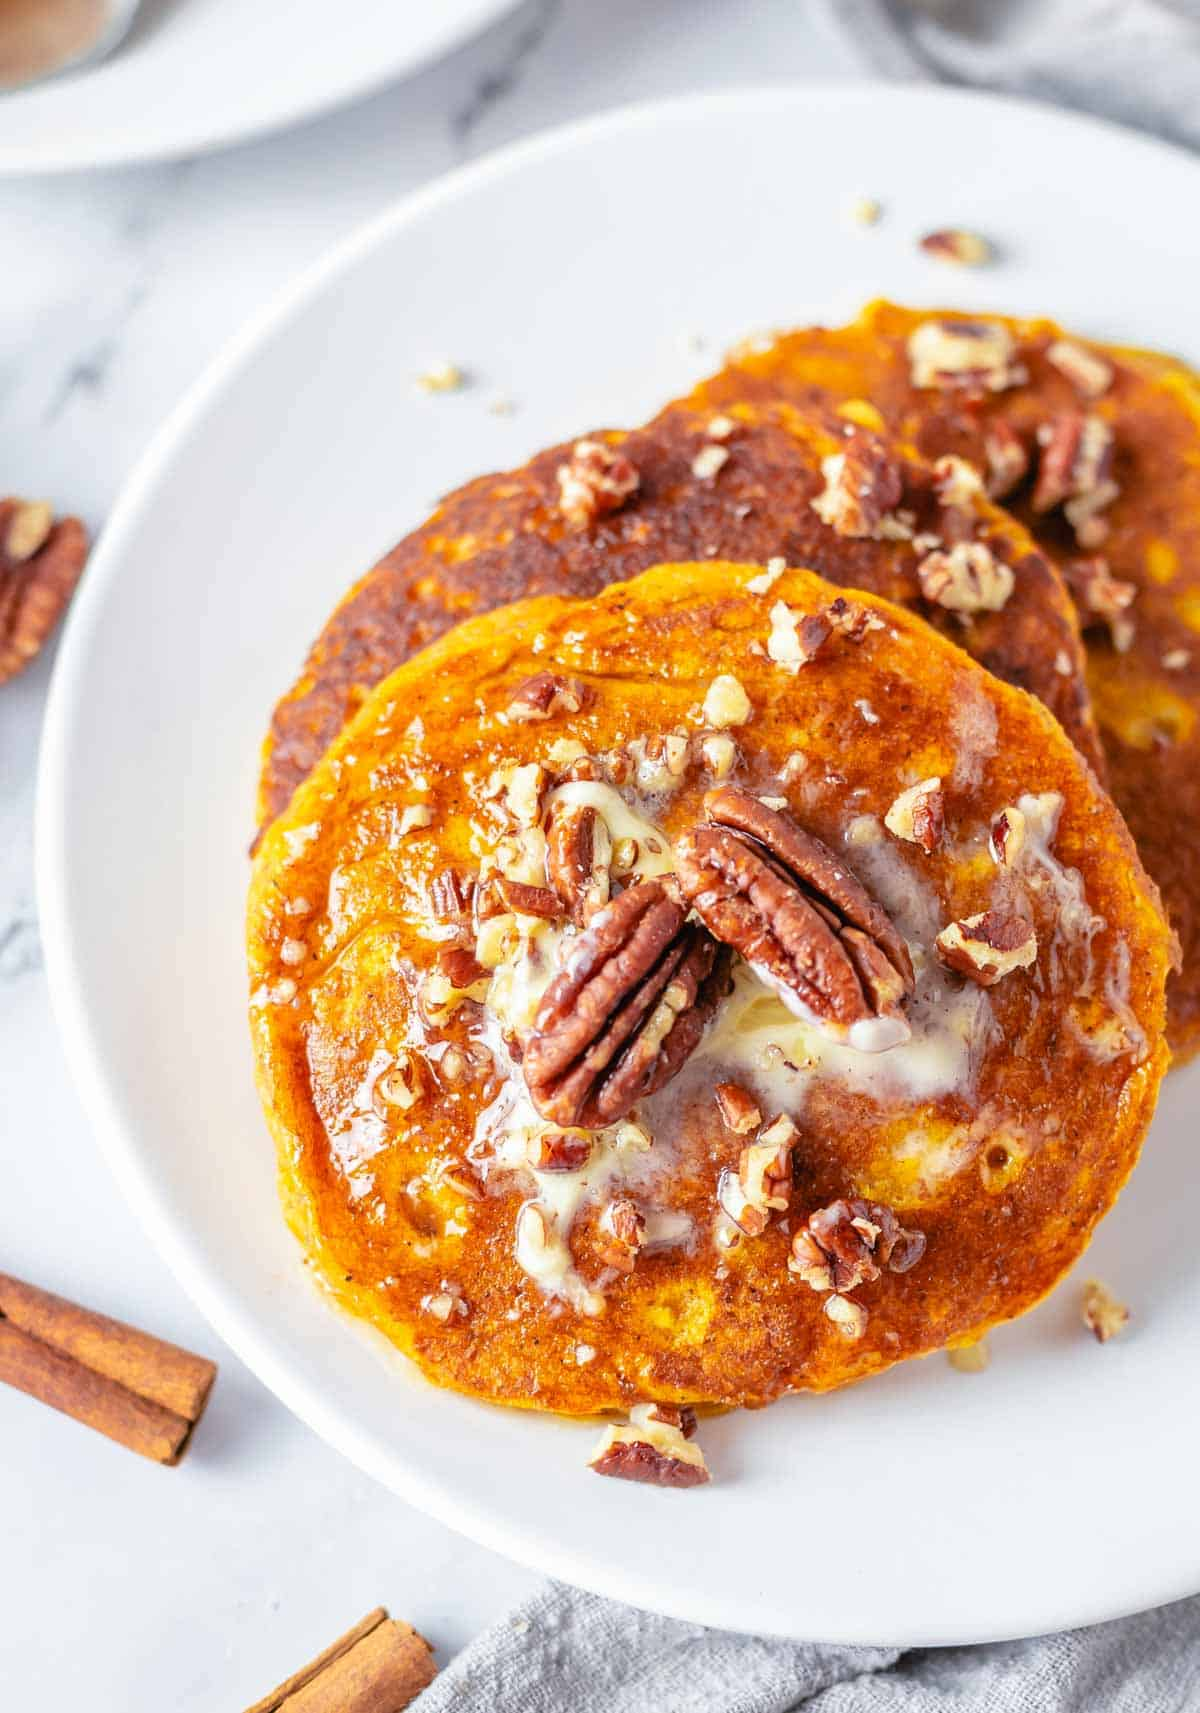 plate of pancakes with pecans on top